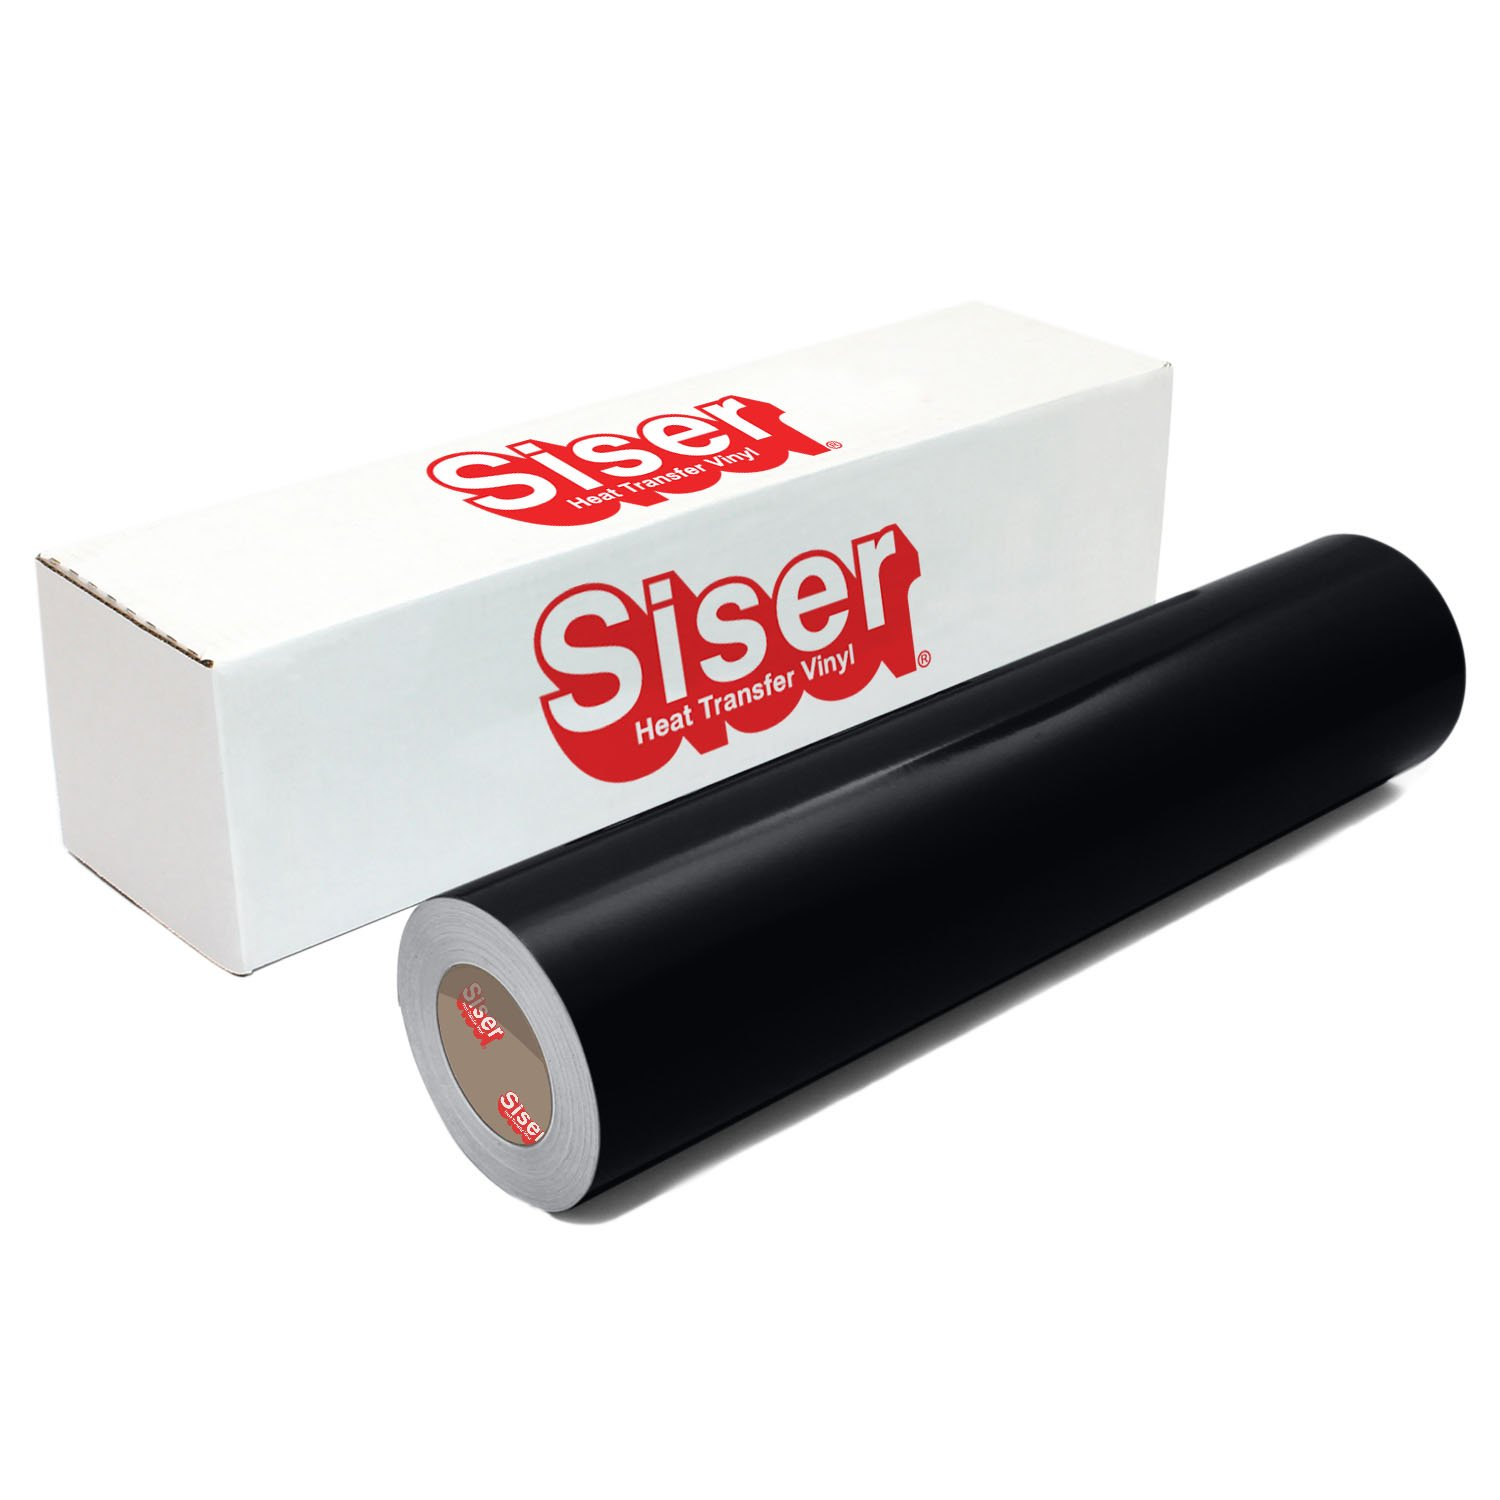 "Siser EasyWeed Heat Transfer Vinyl, 12"" x 10' Roll - Black"